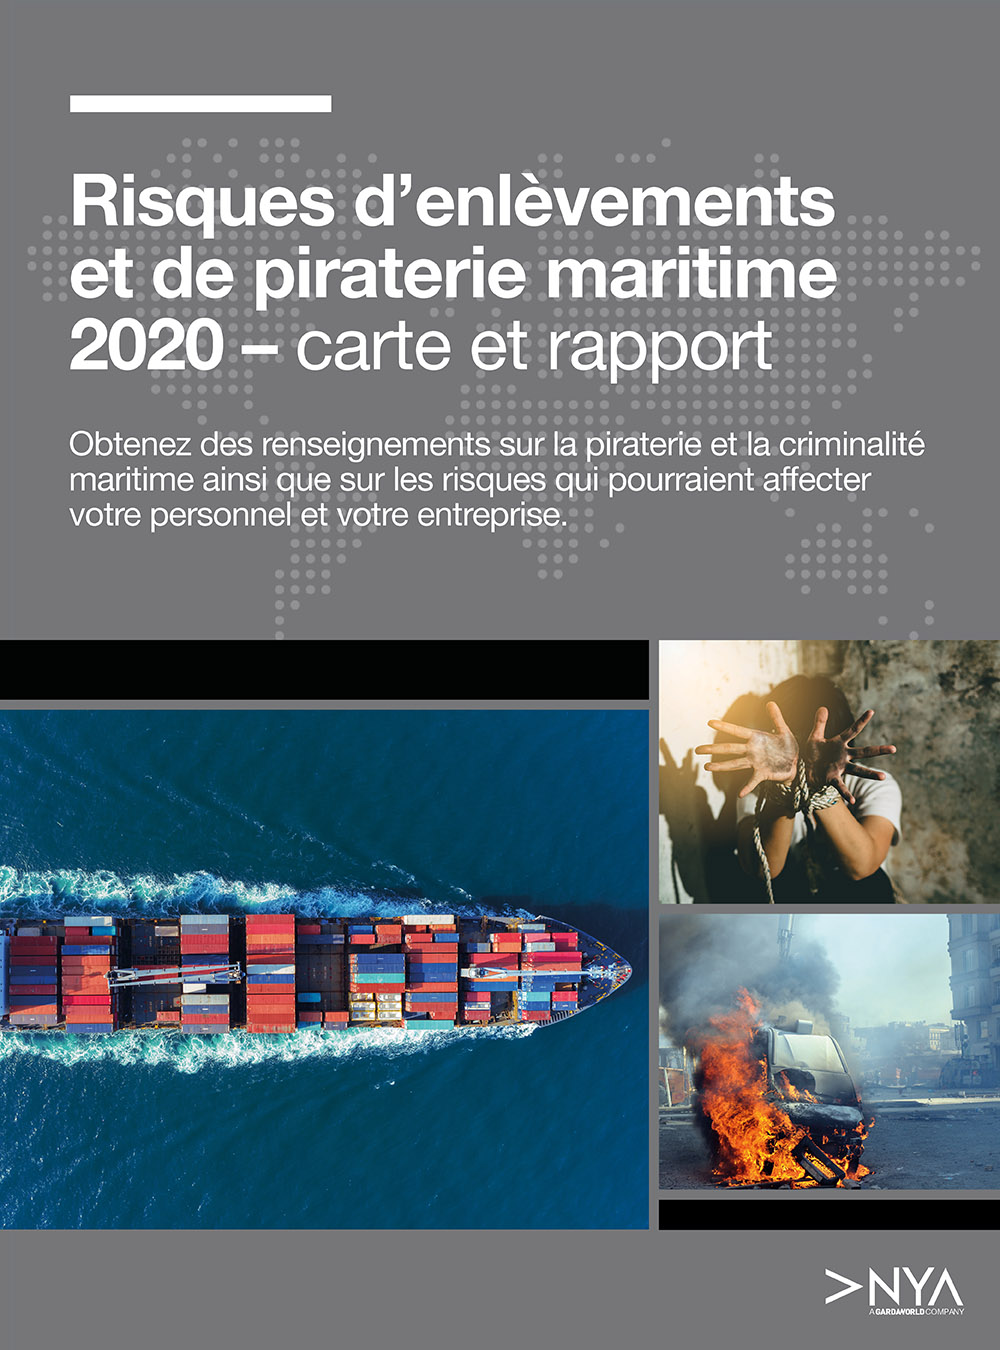 Carte des risques d'enlèvements et de piraterie maritime 2020 - telecharger